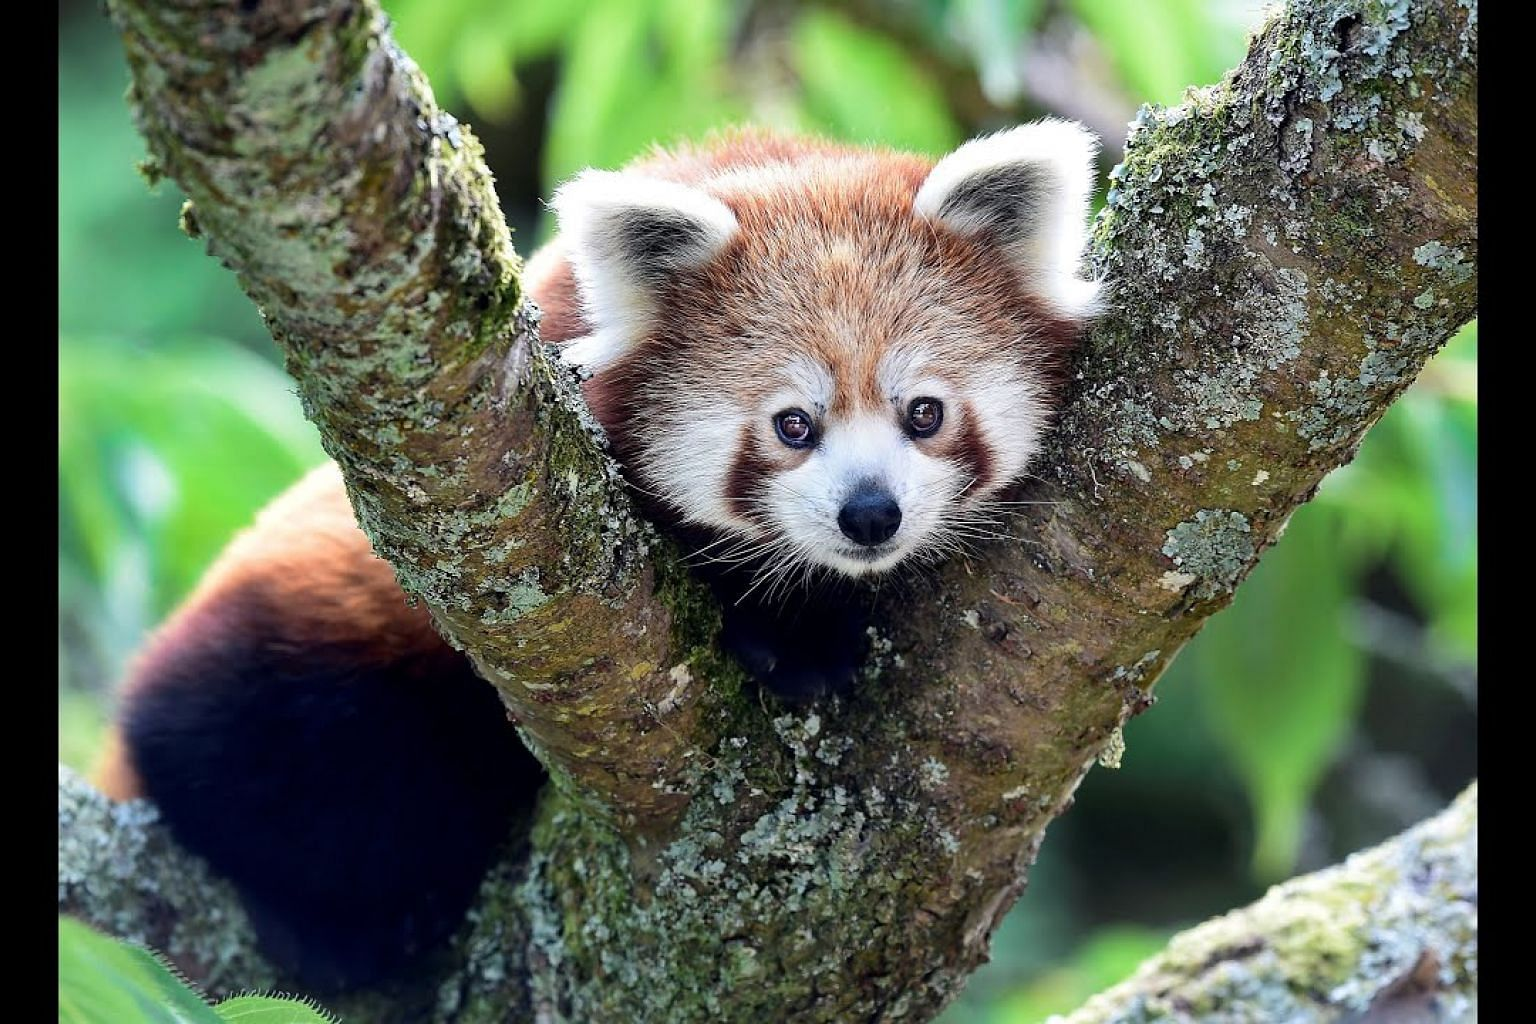 Adorable red pandas are actually two species